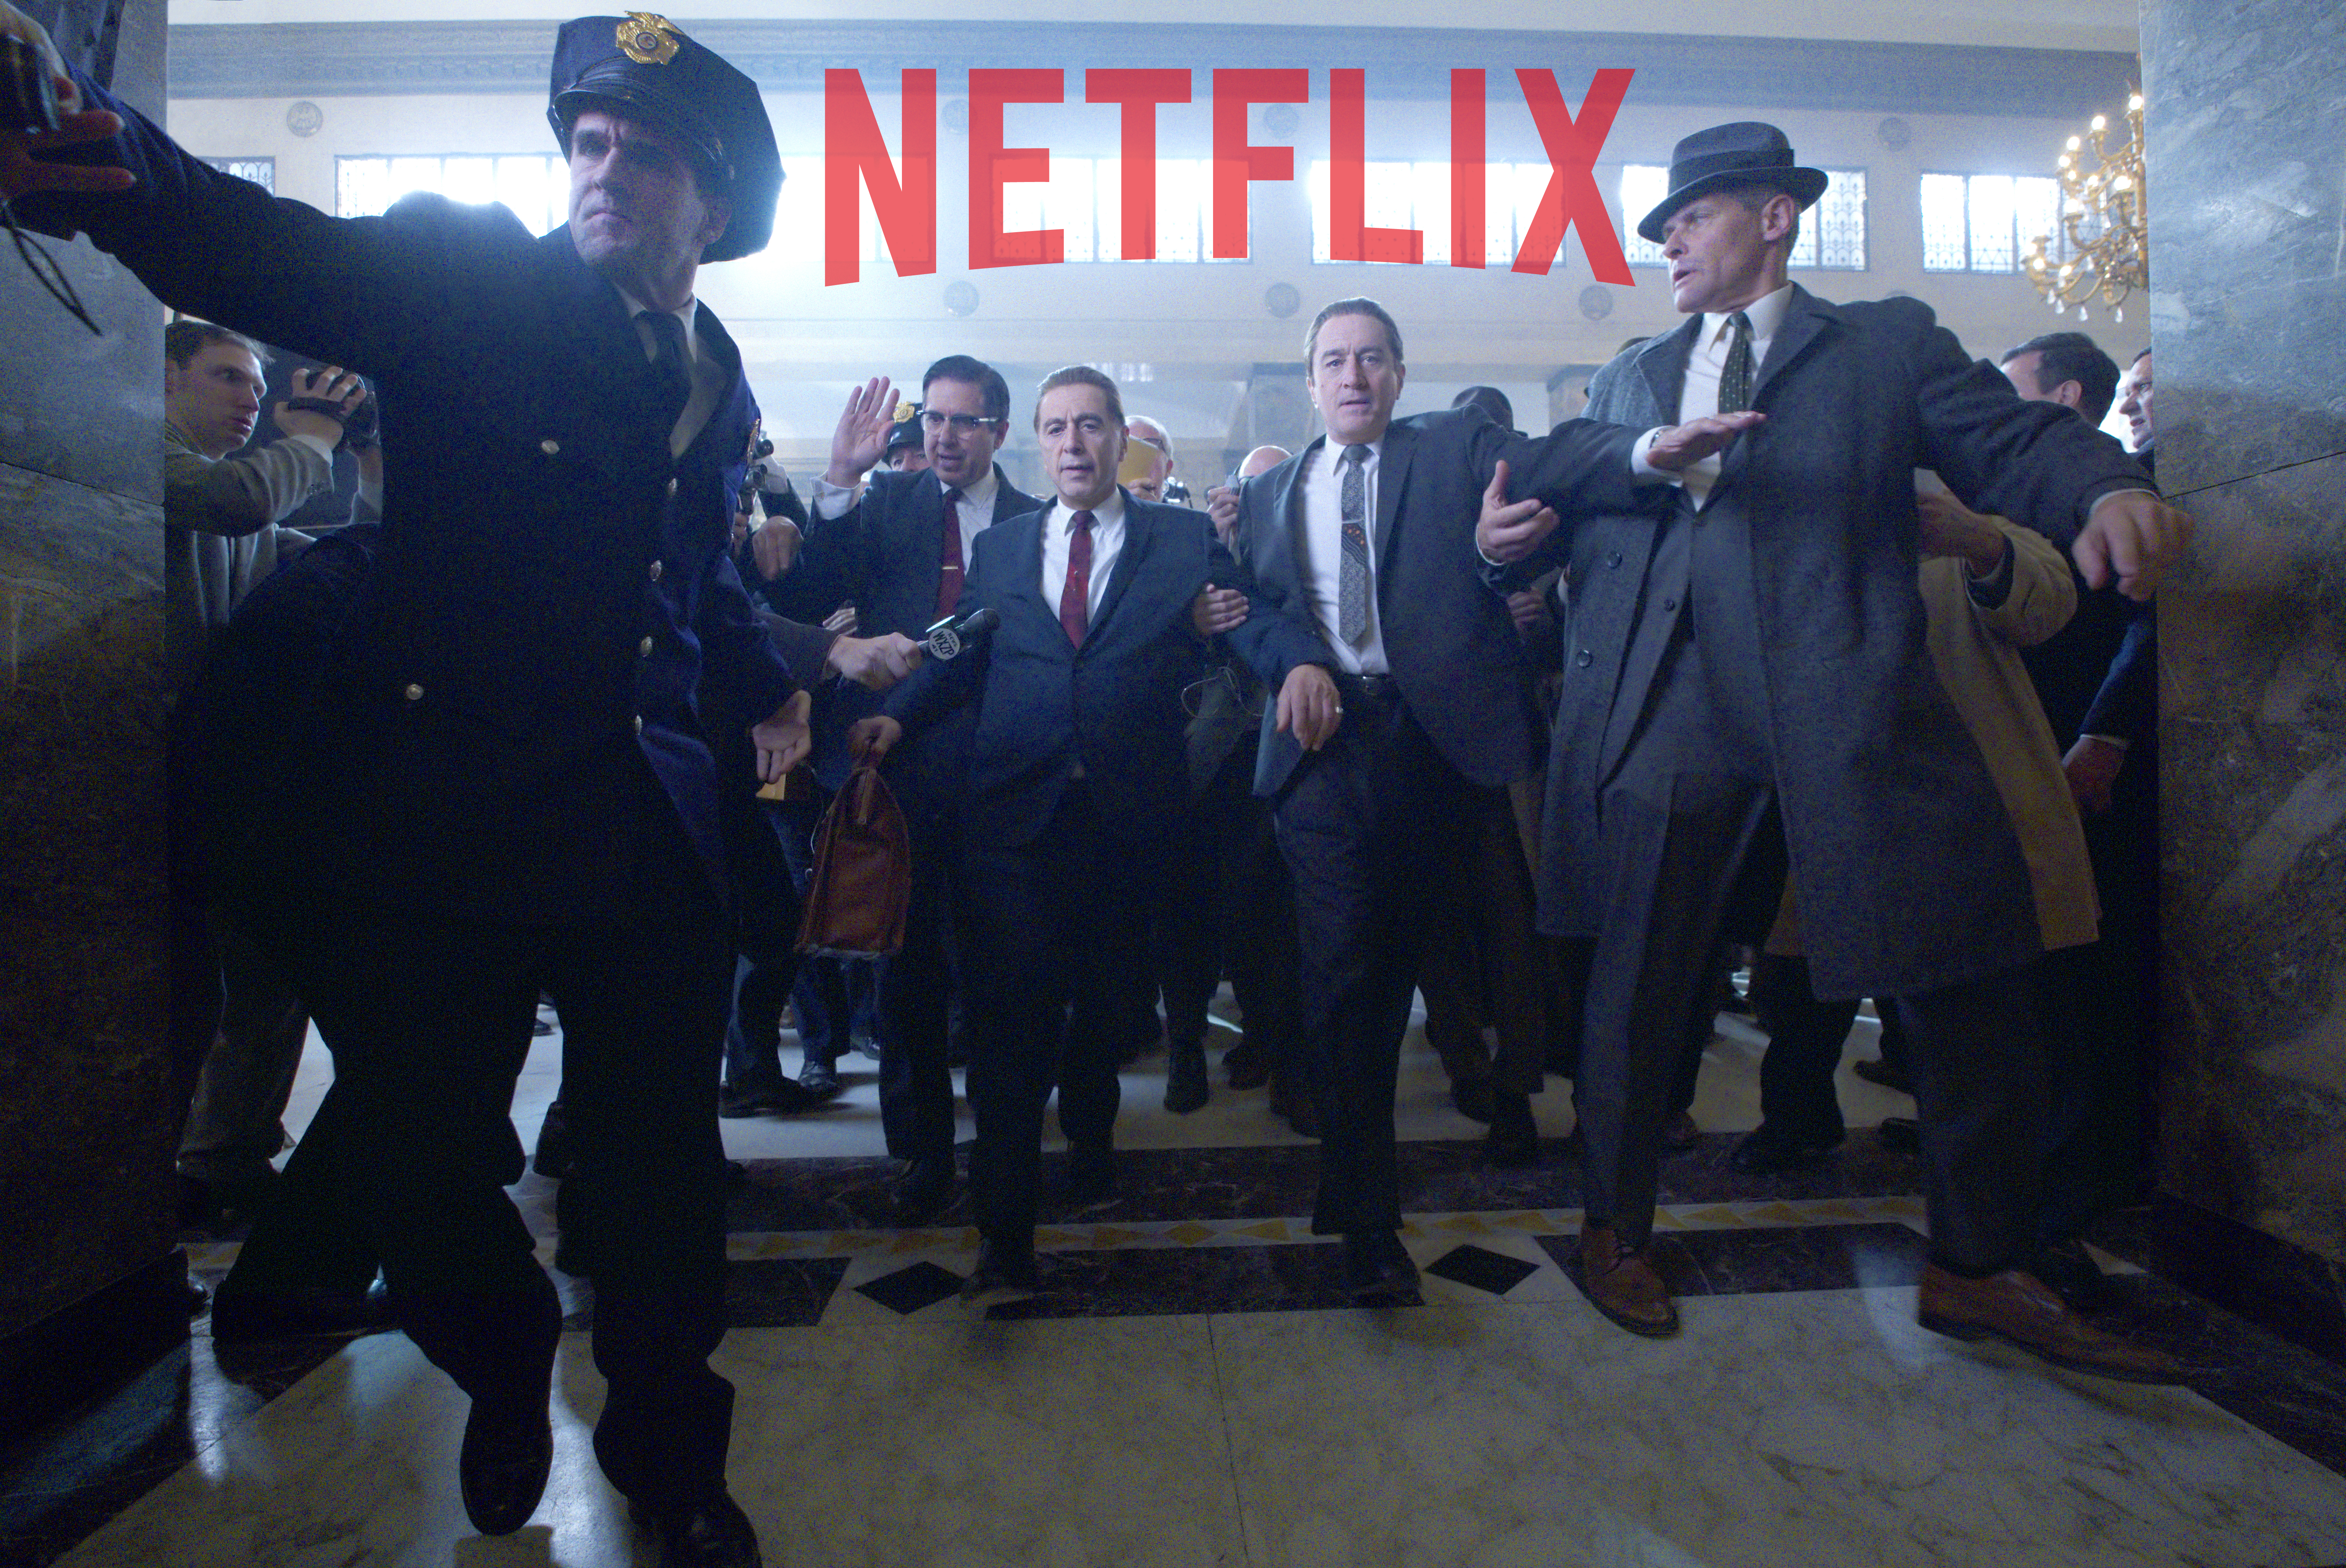 THE IRISHMAN, THE IRISHMAN Netflix